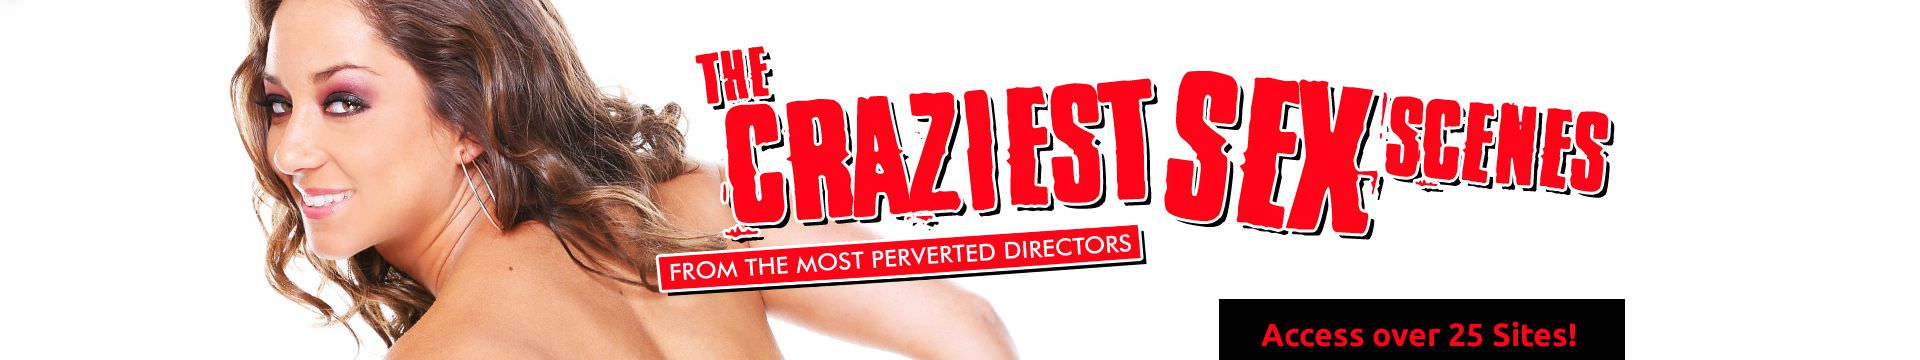 Evil Angel Network - The Craziest Sex Scenes From The Most Perverted Directors - Access Over 25 Sites!